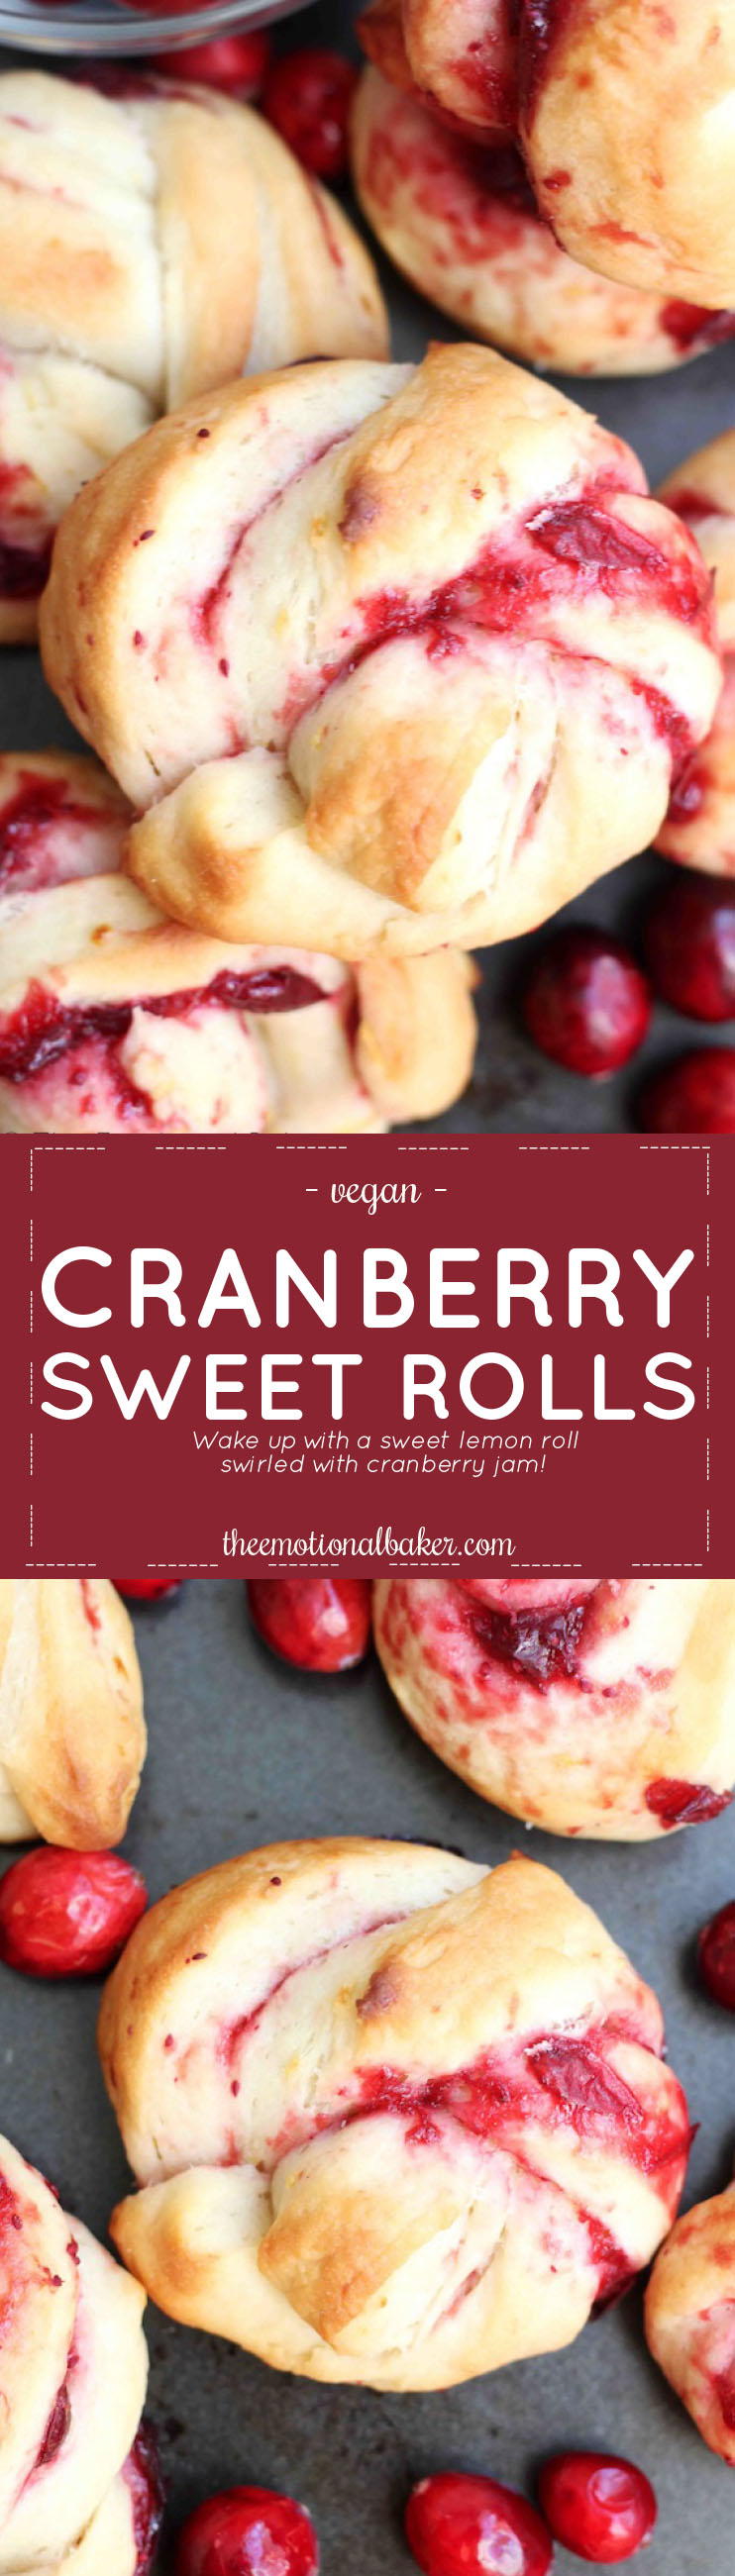 Start your day with Cranberry Sweet Rolls! This breakfast bun features a soft lemon dough that is paired with homemade cranberry jam.